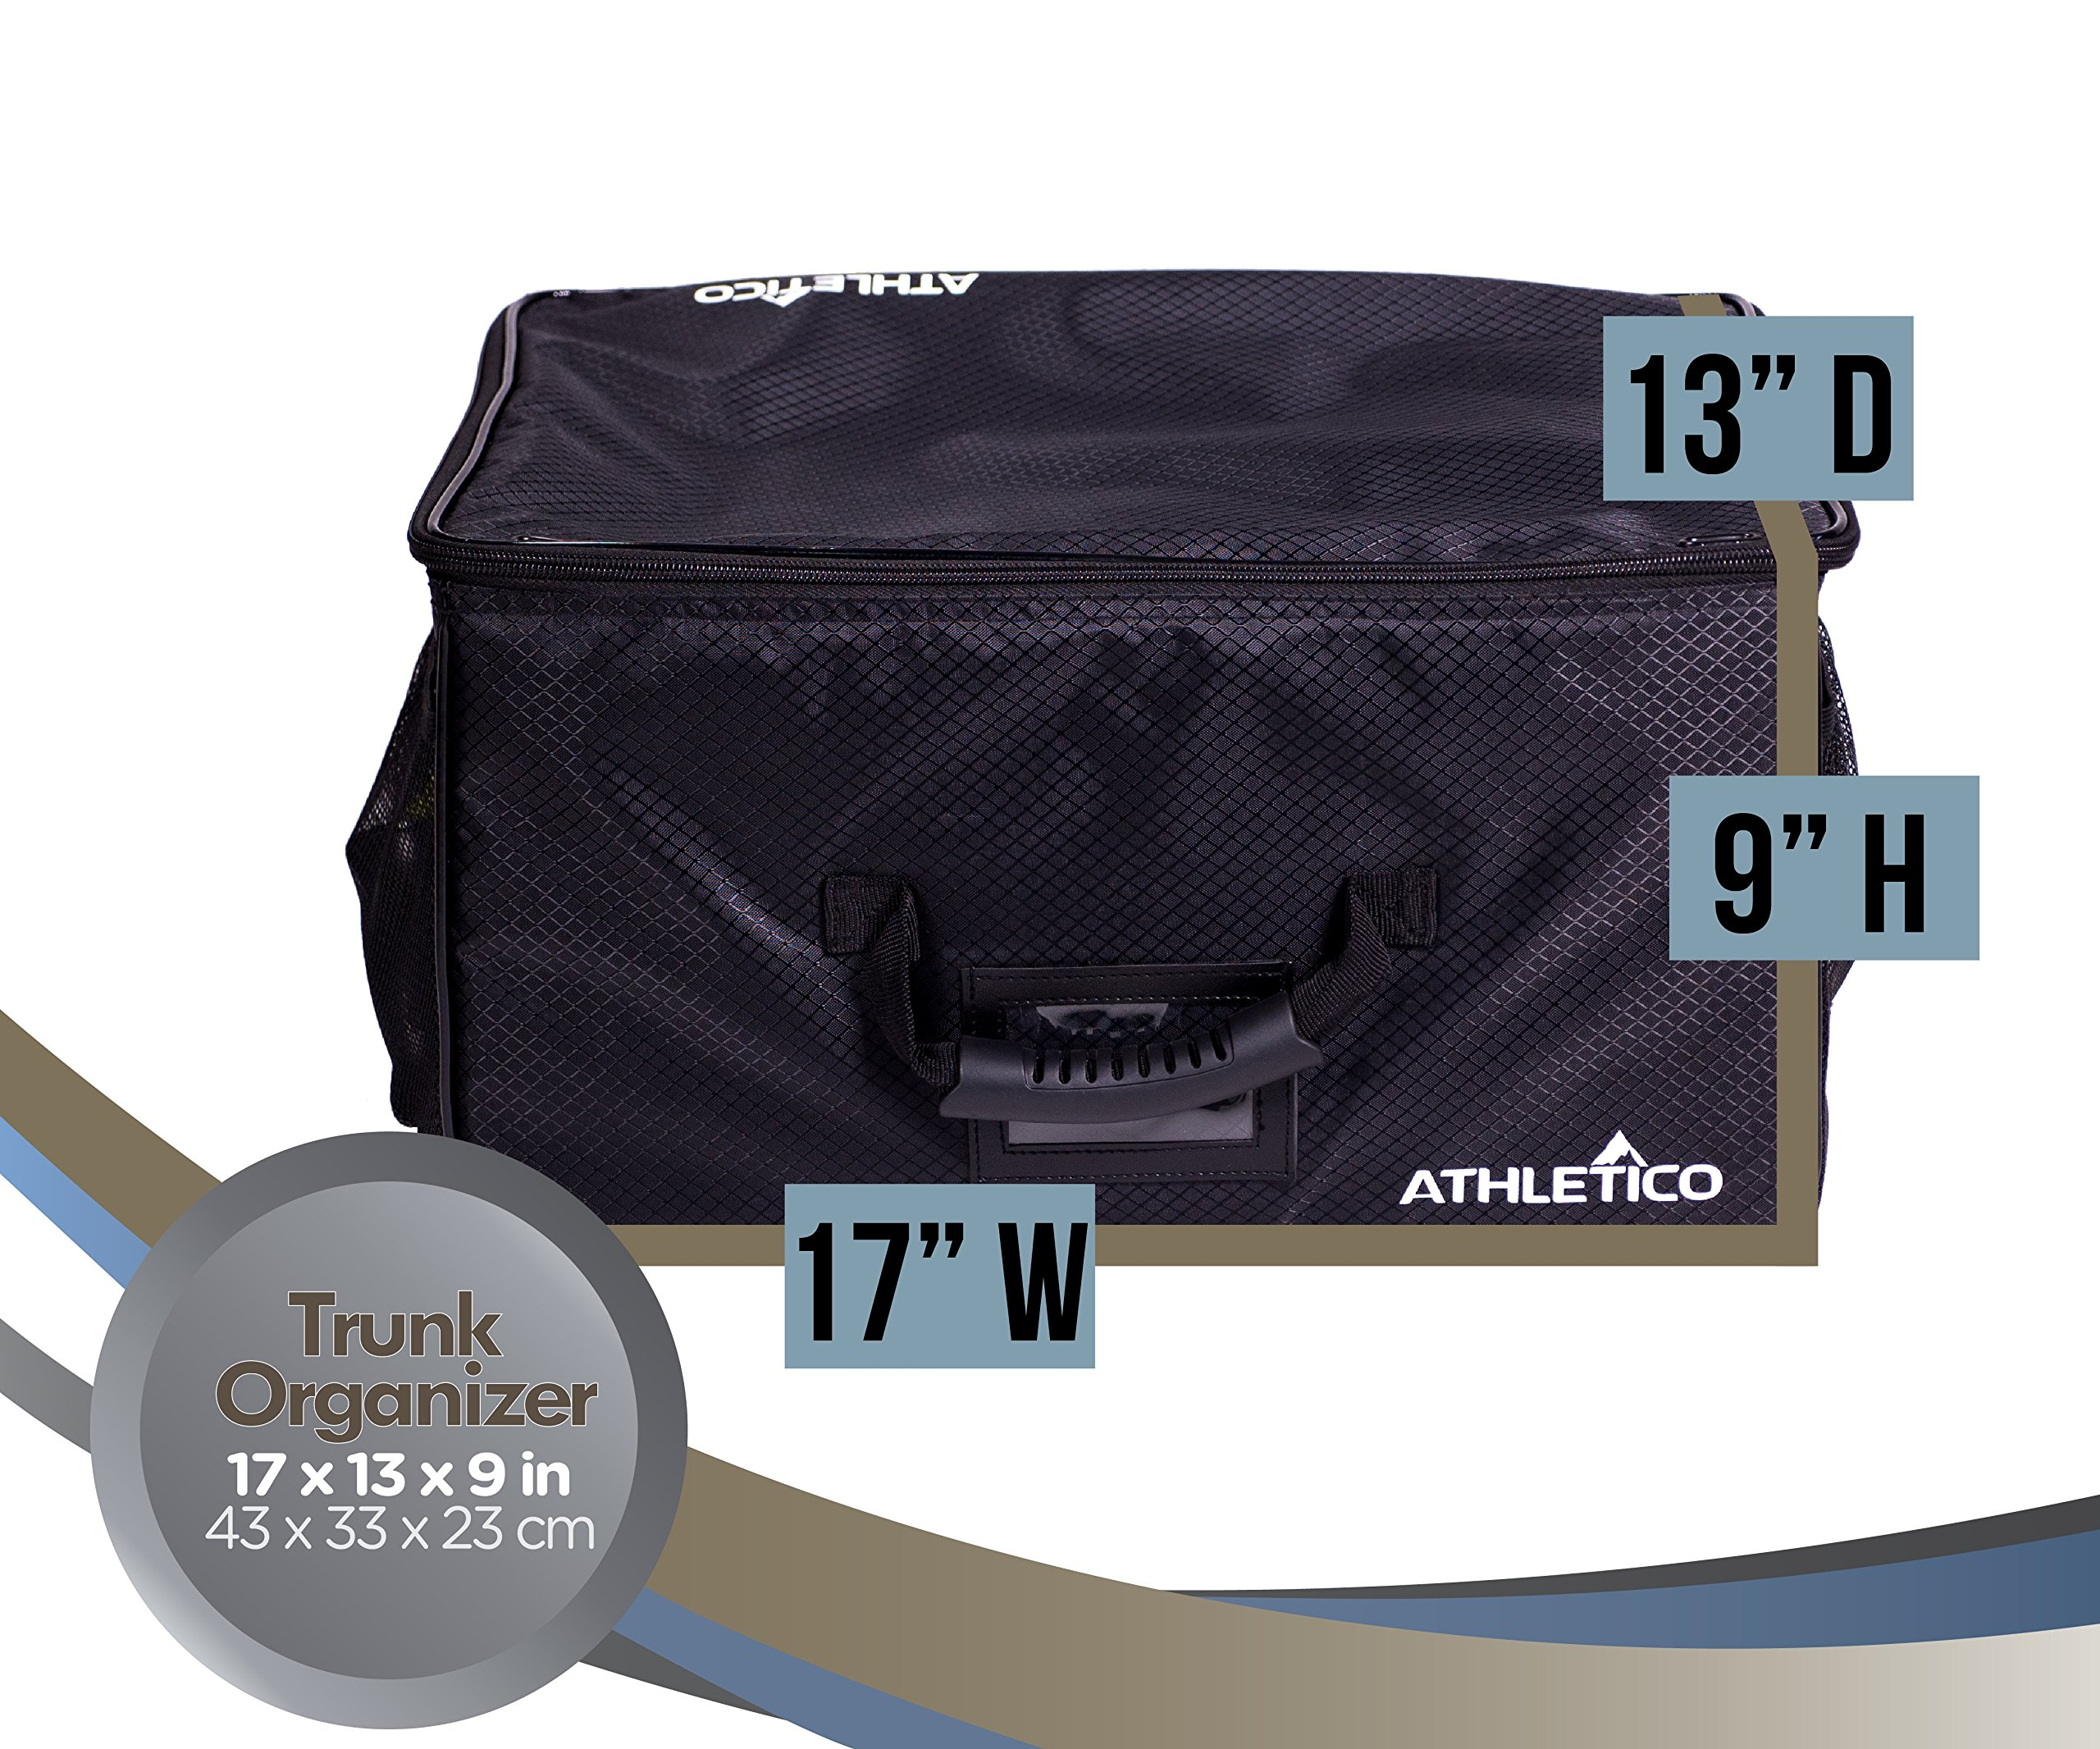 Athletico Golf Trunk Organizer Storage - Car Golf Locker To Store Golf Accessories | Collapsible When Not In Use by Athletico (Image #4)